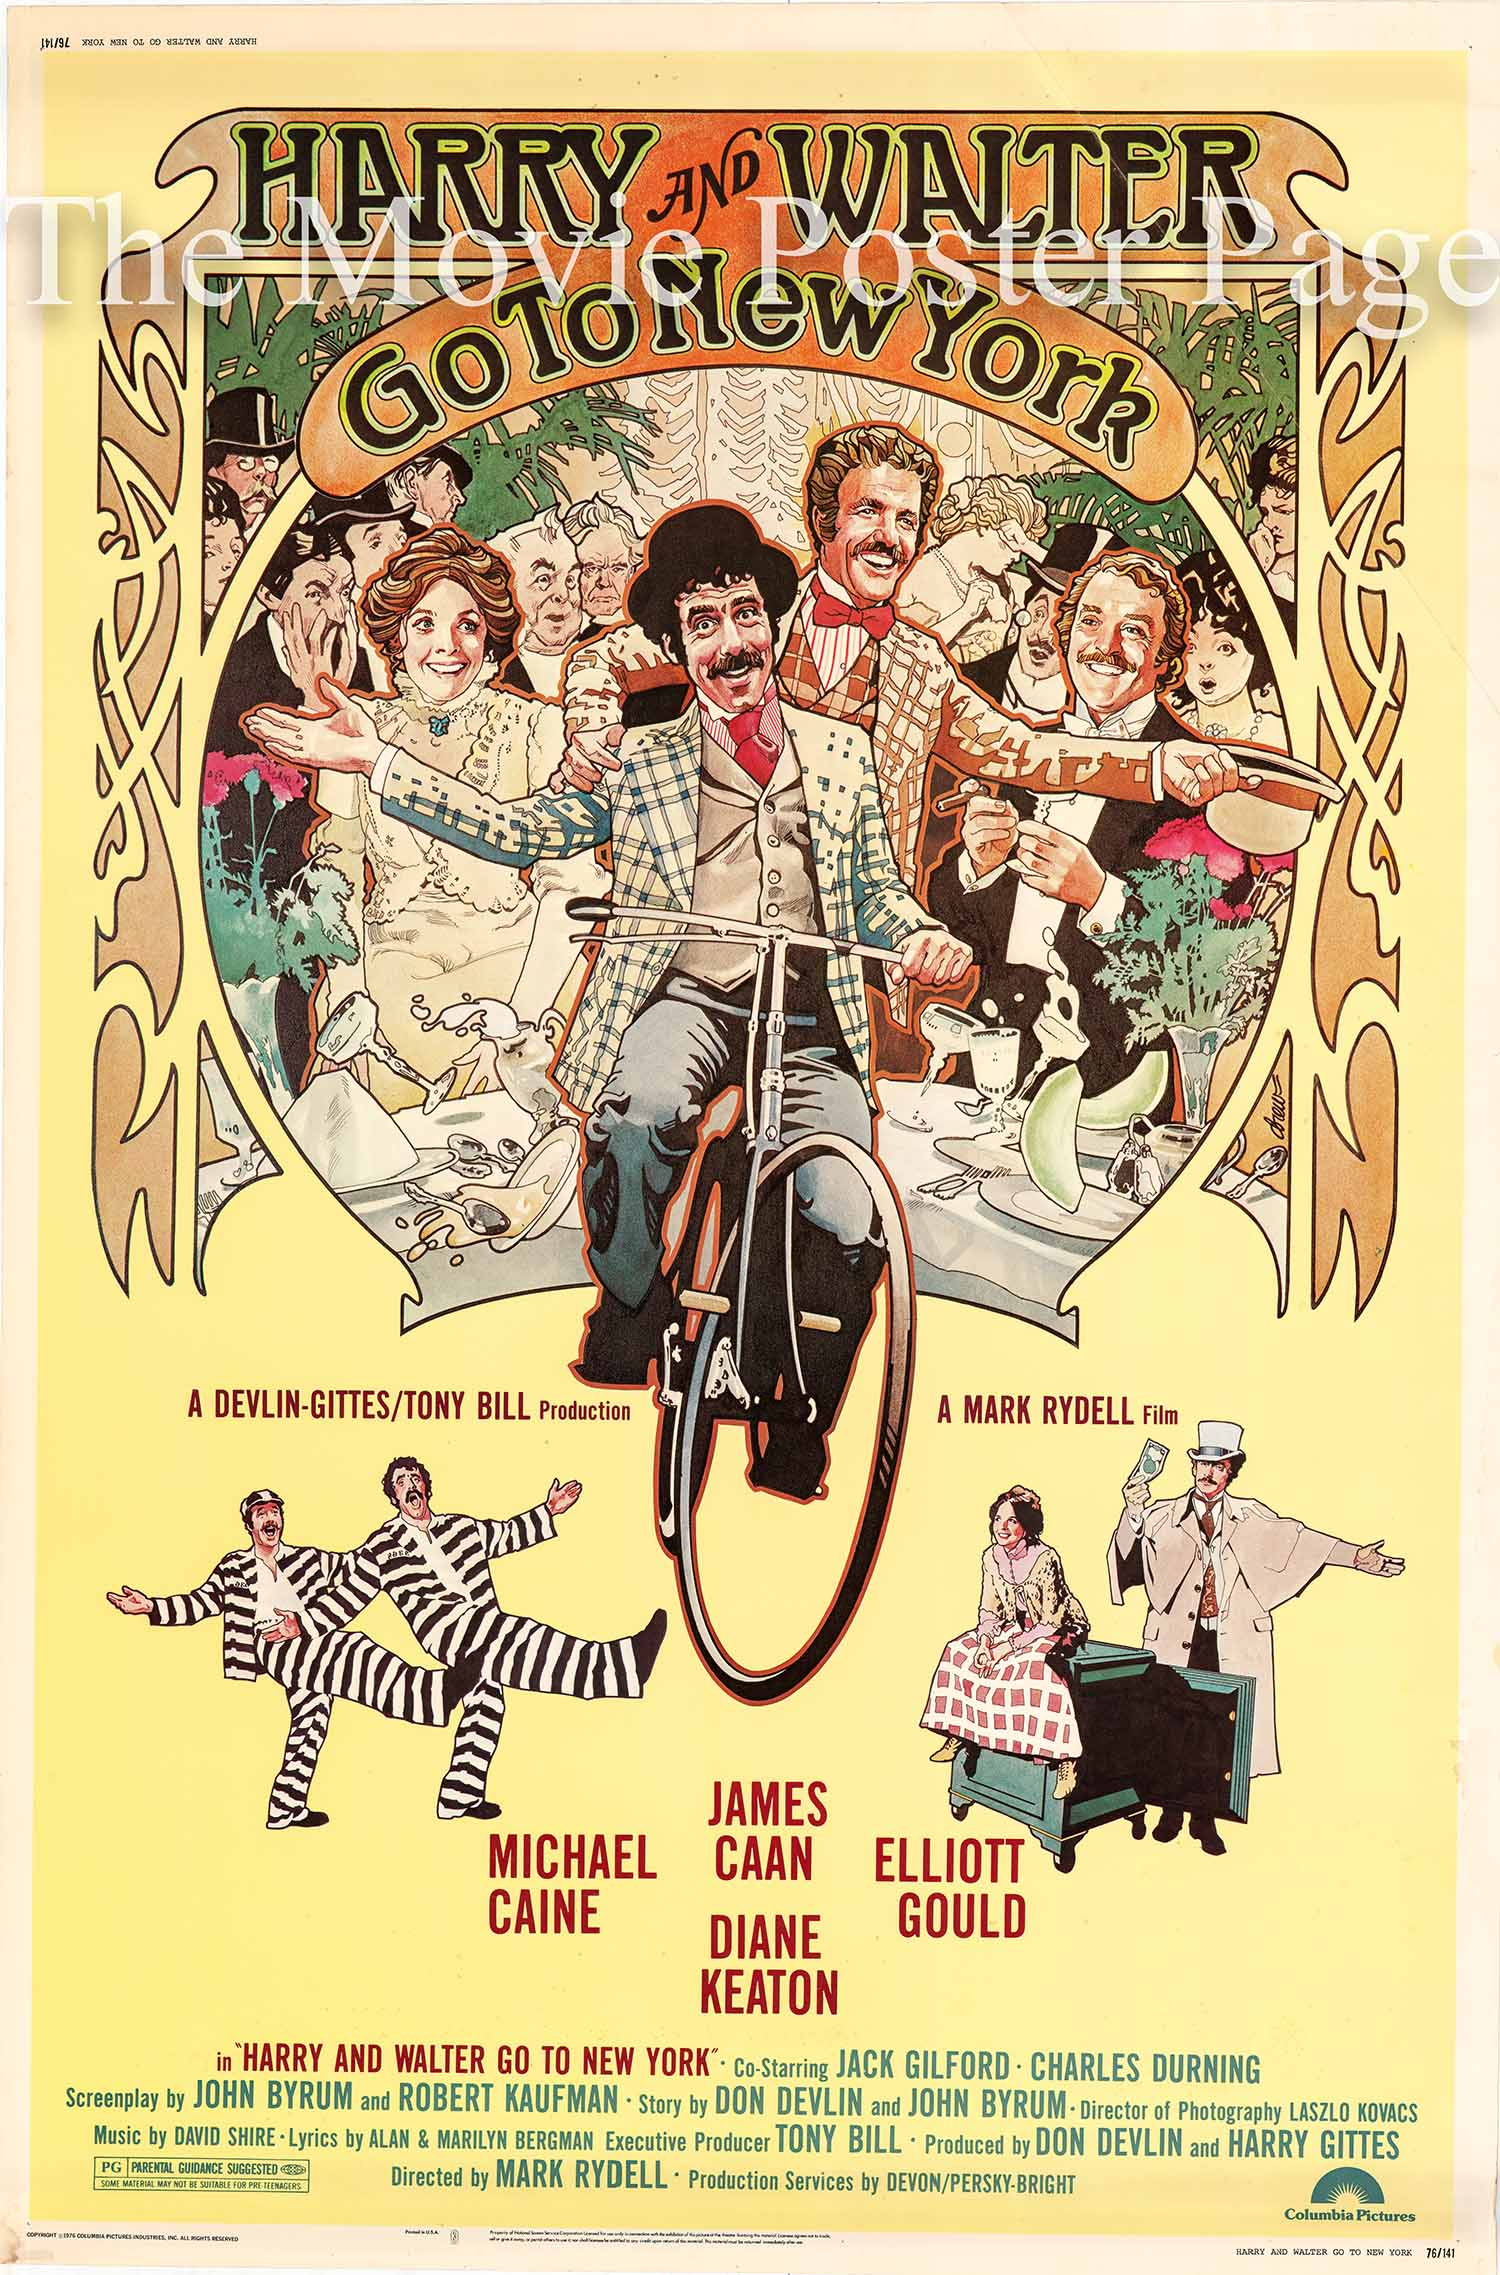 Pictured is a US 40x60 promotional poster for the 1976 Mark Rydell film Harry and Walter Go to New York starring James Caan.